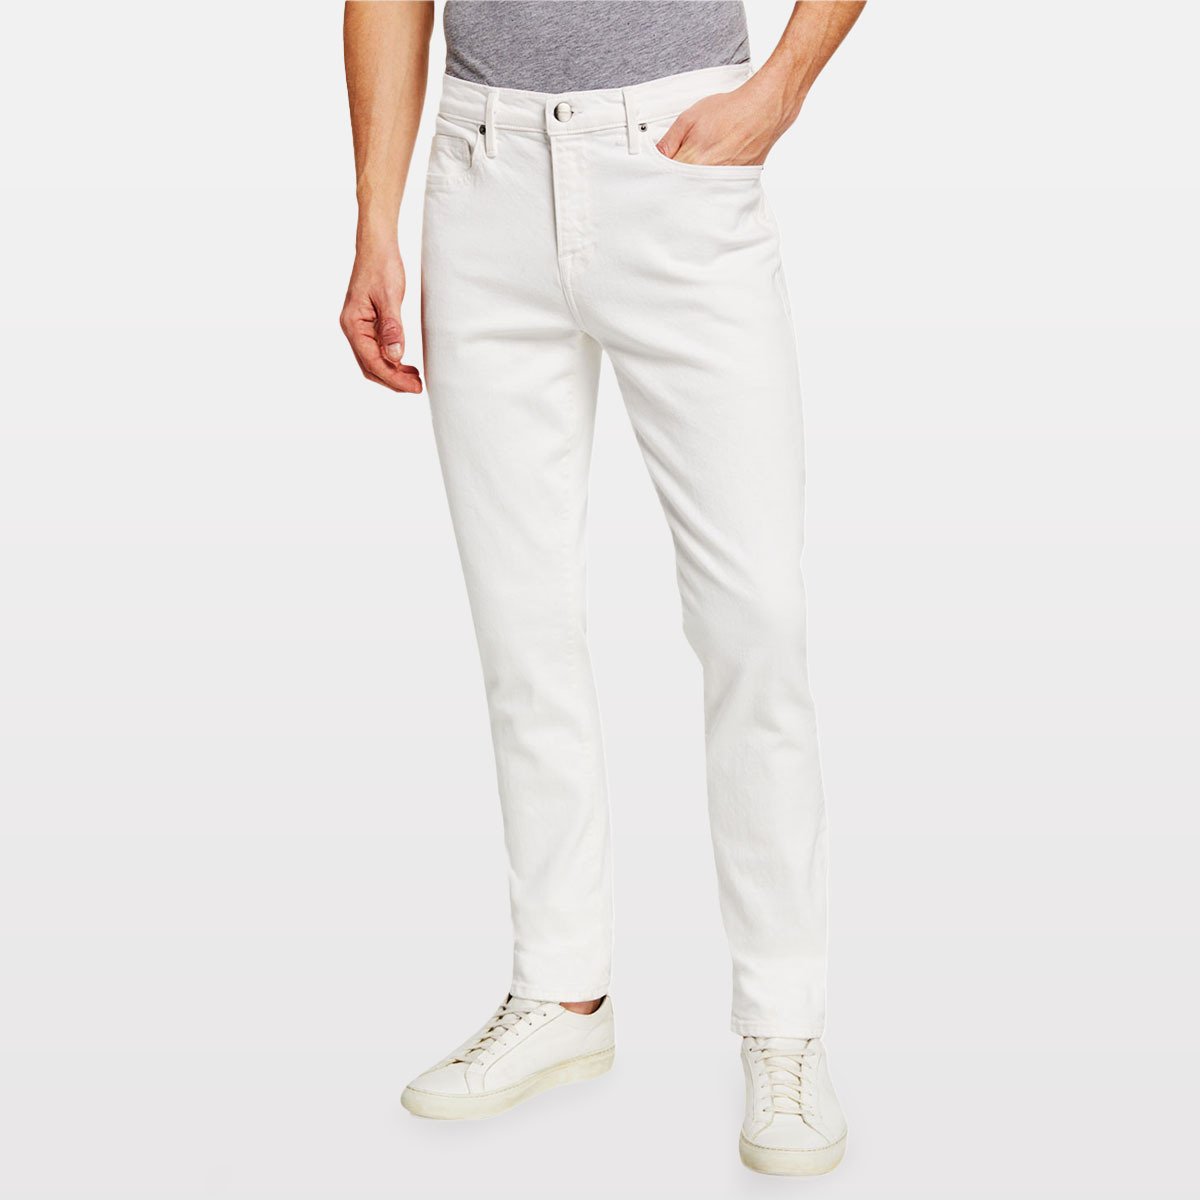 Frame L'Homme Skinny-Fit Jeans neiman marcus